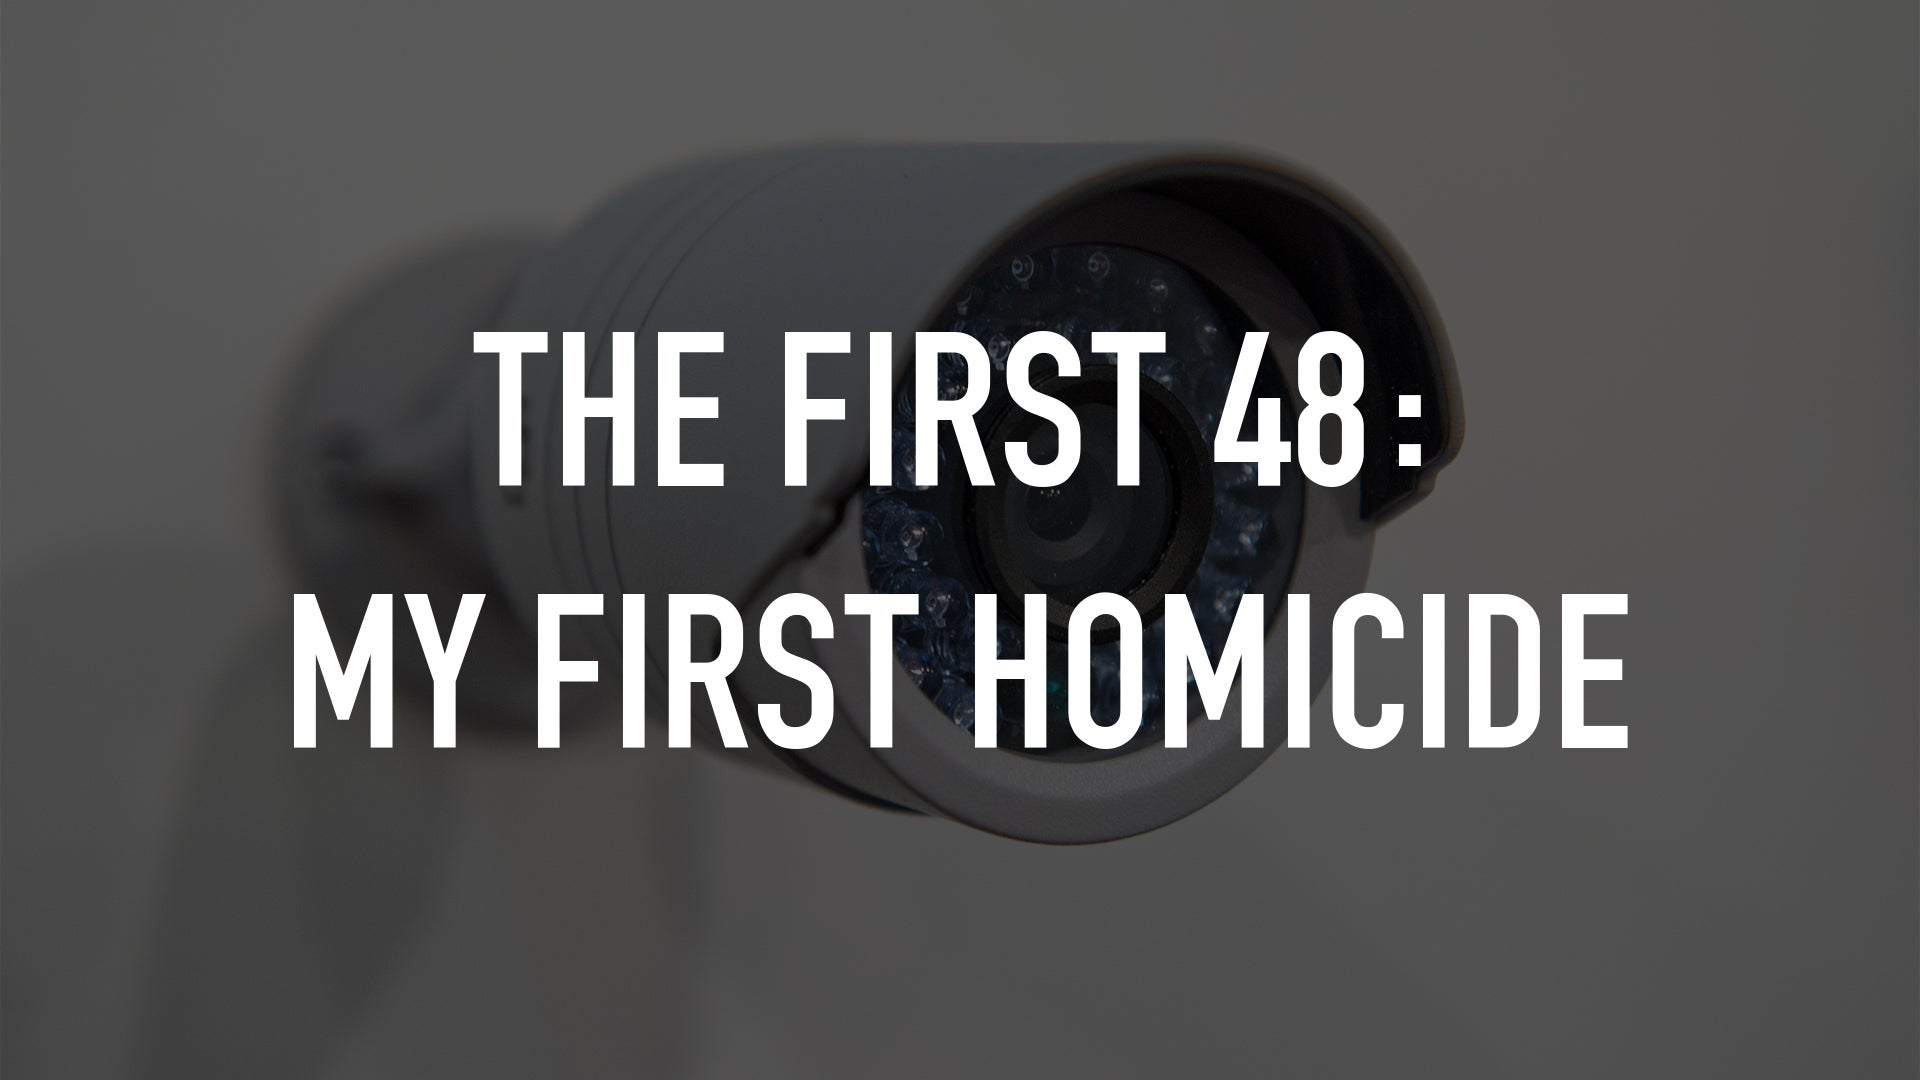 The First 48: My First Homicide